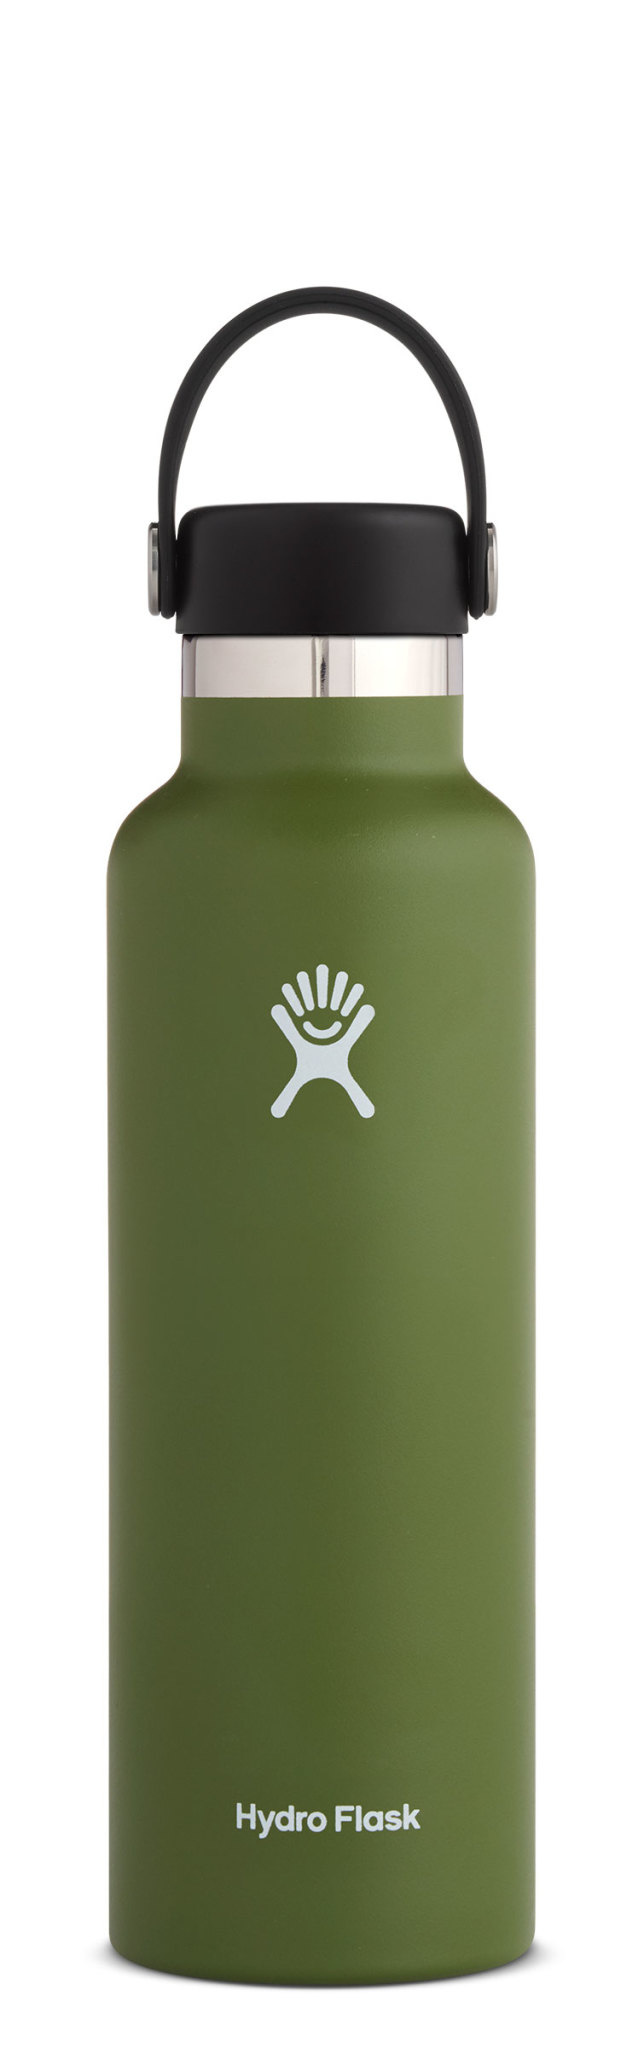 Hydro Flask 21oz Standard Mouth with Standard Flex Cap-5